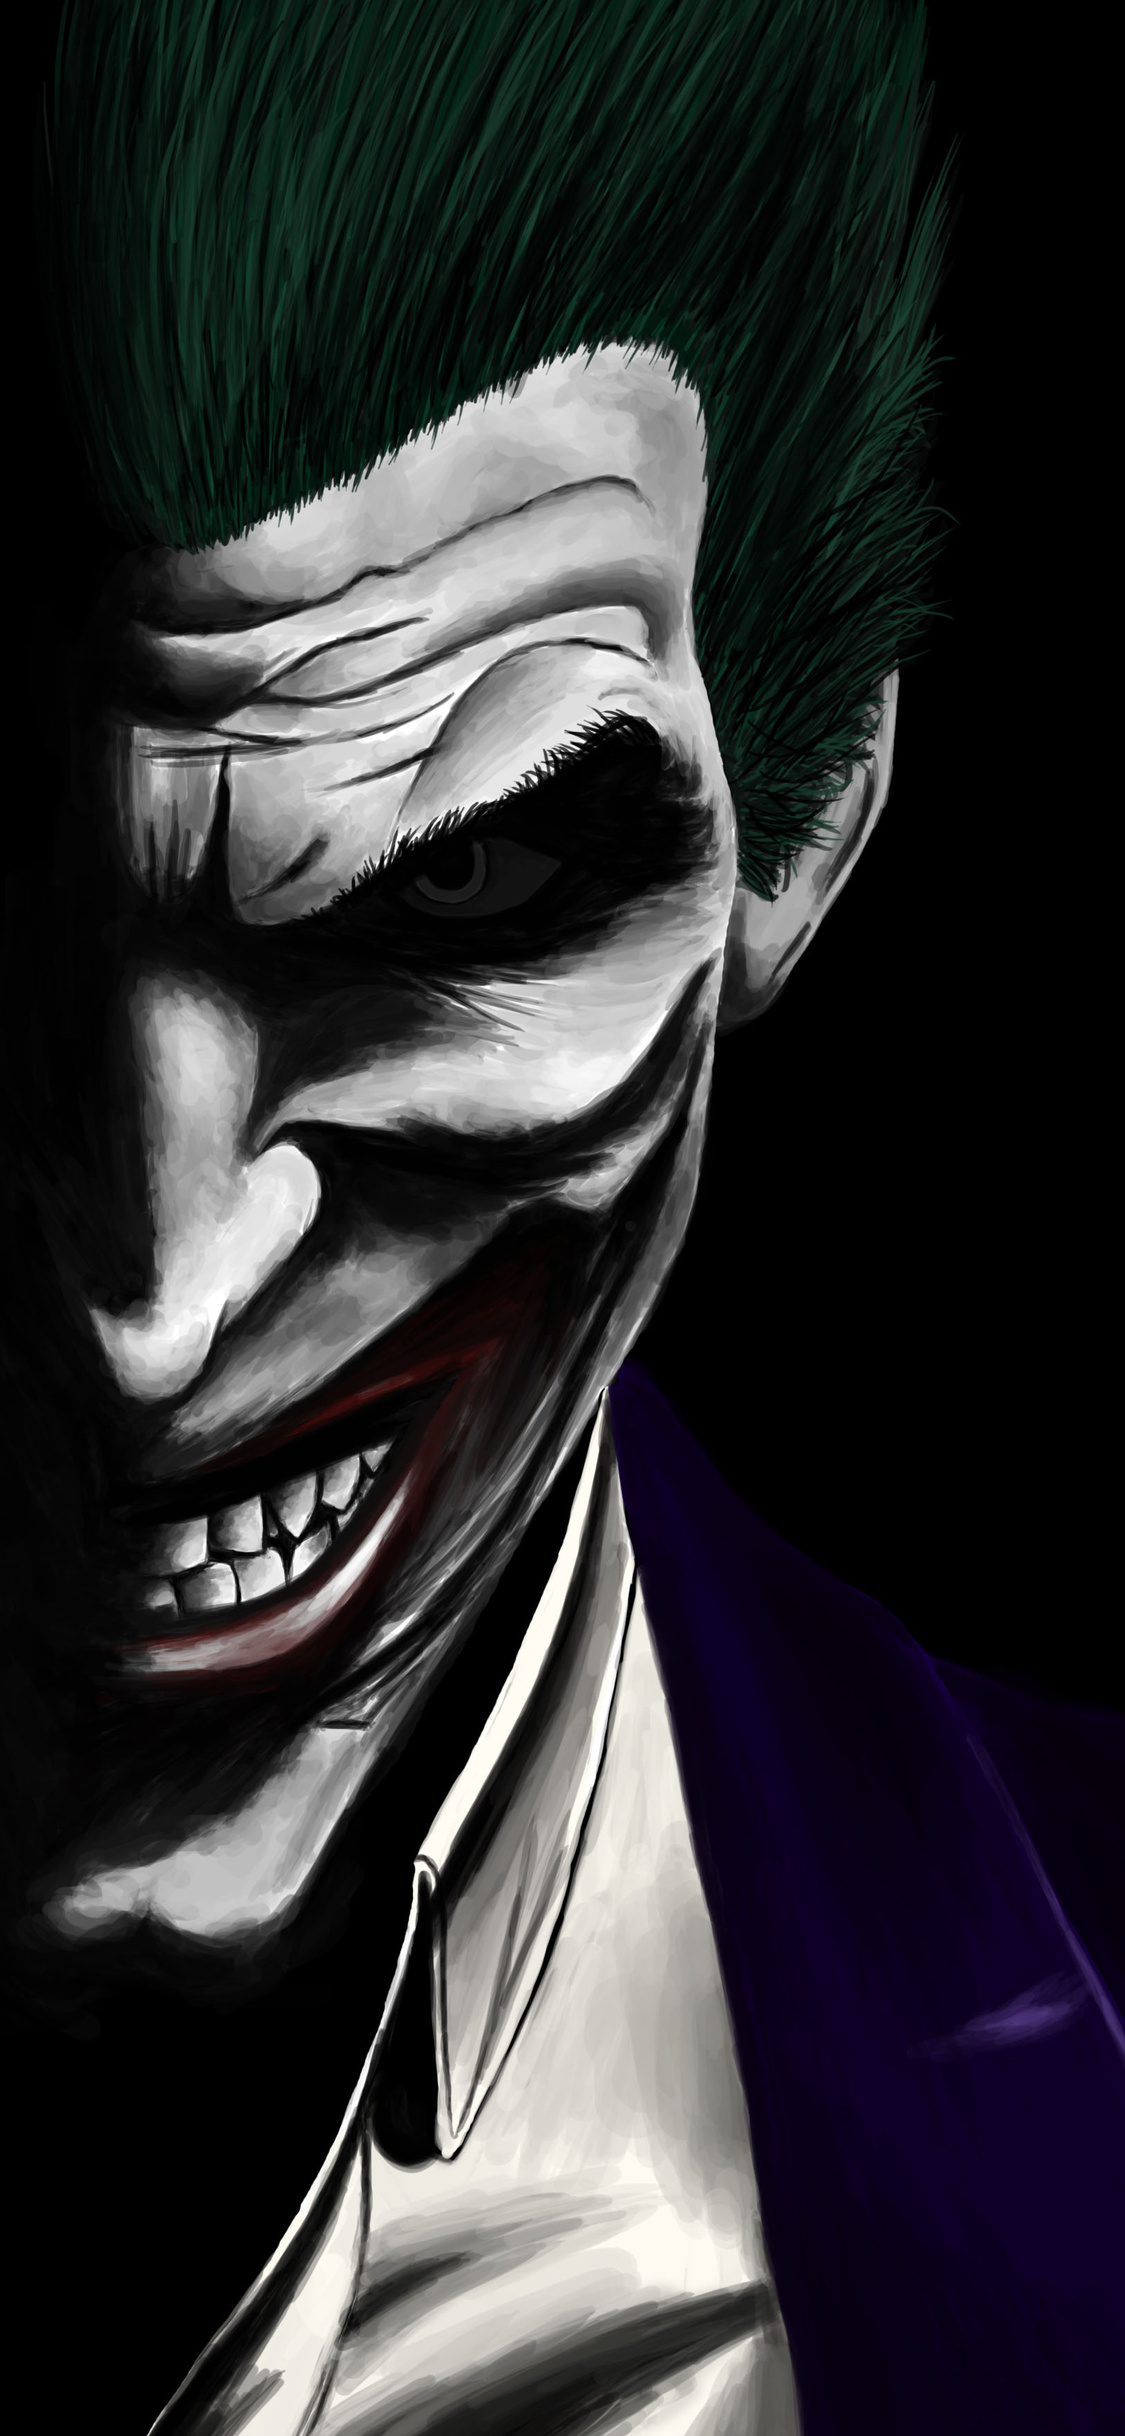 1125x2436 Joker Artwork 5k Iphone Xs Iphone 10 Iphone X Hd